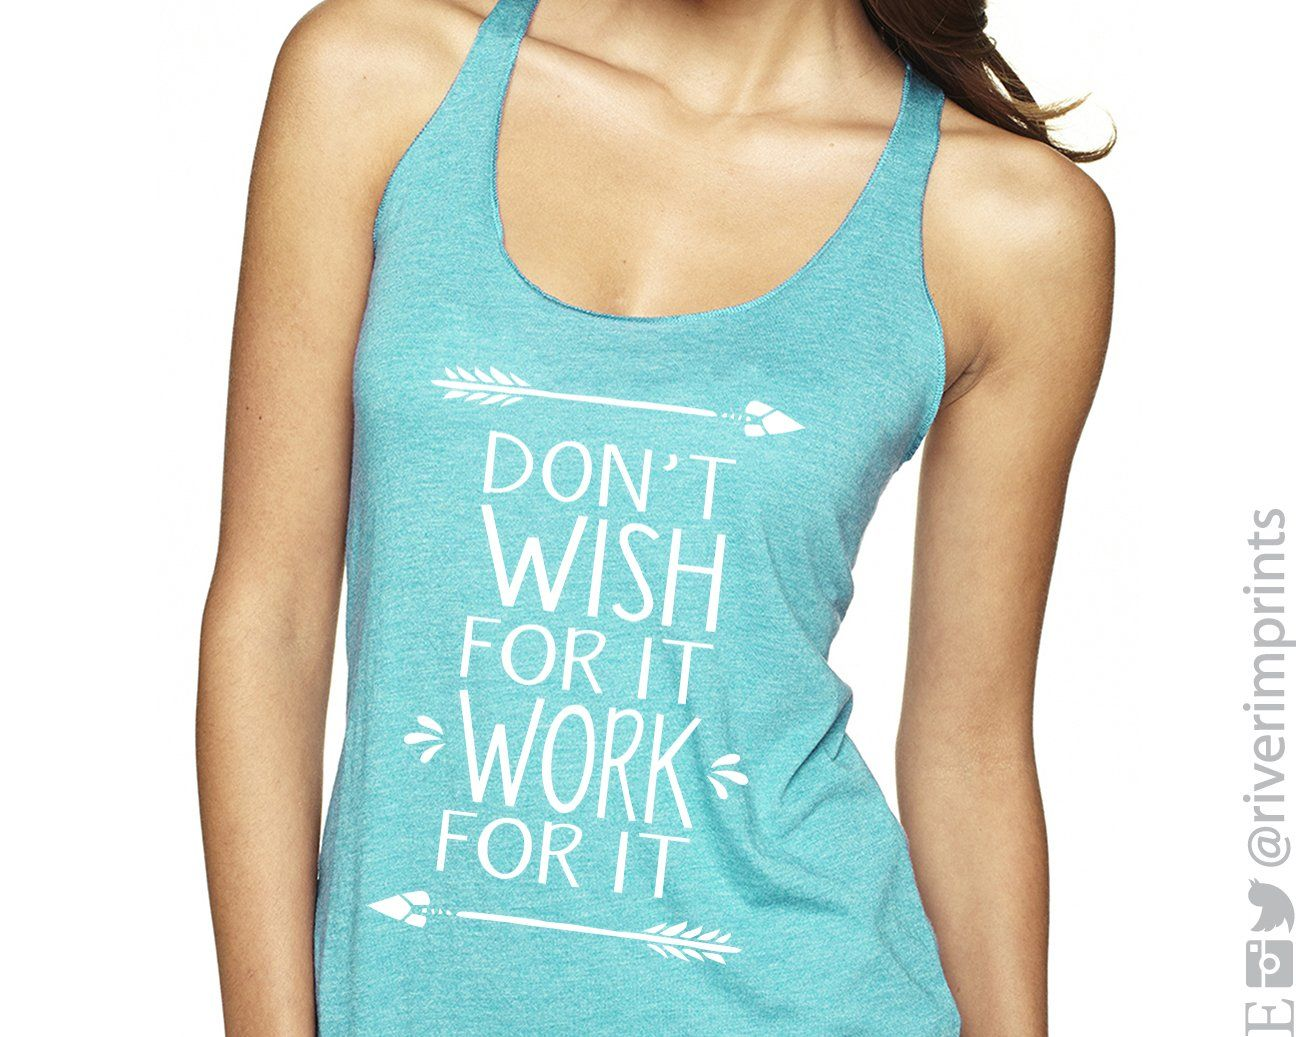 b120f554 Don't Wish for It Work for It graphic tank. This triblend dolman ladies racerback  tank is made from a blend of cotton, polyester, and rayon. Super Soft!